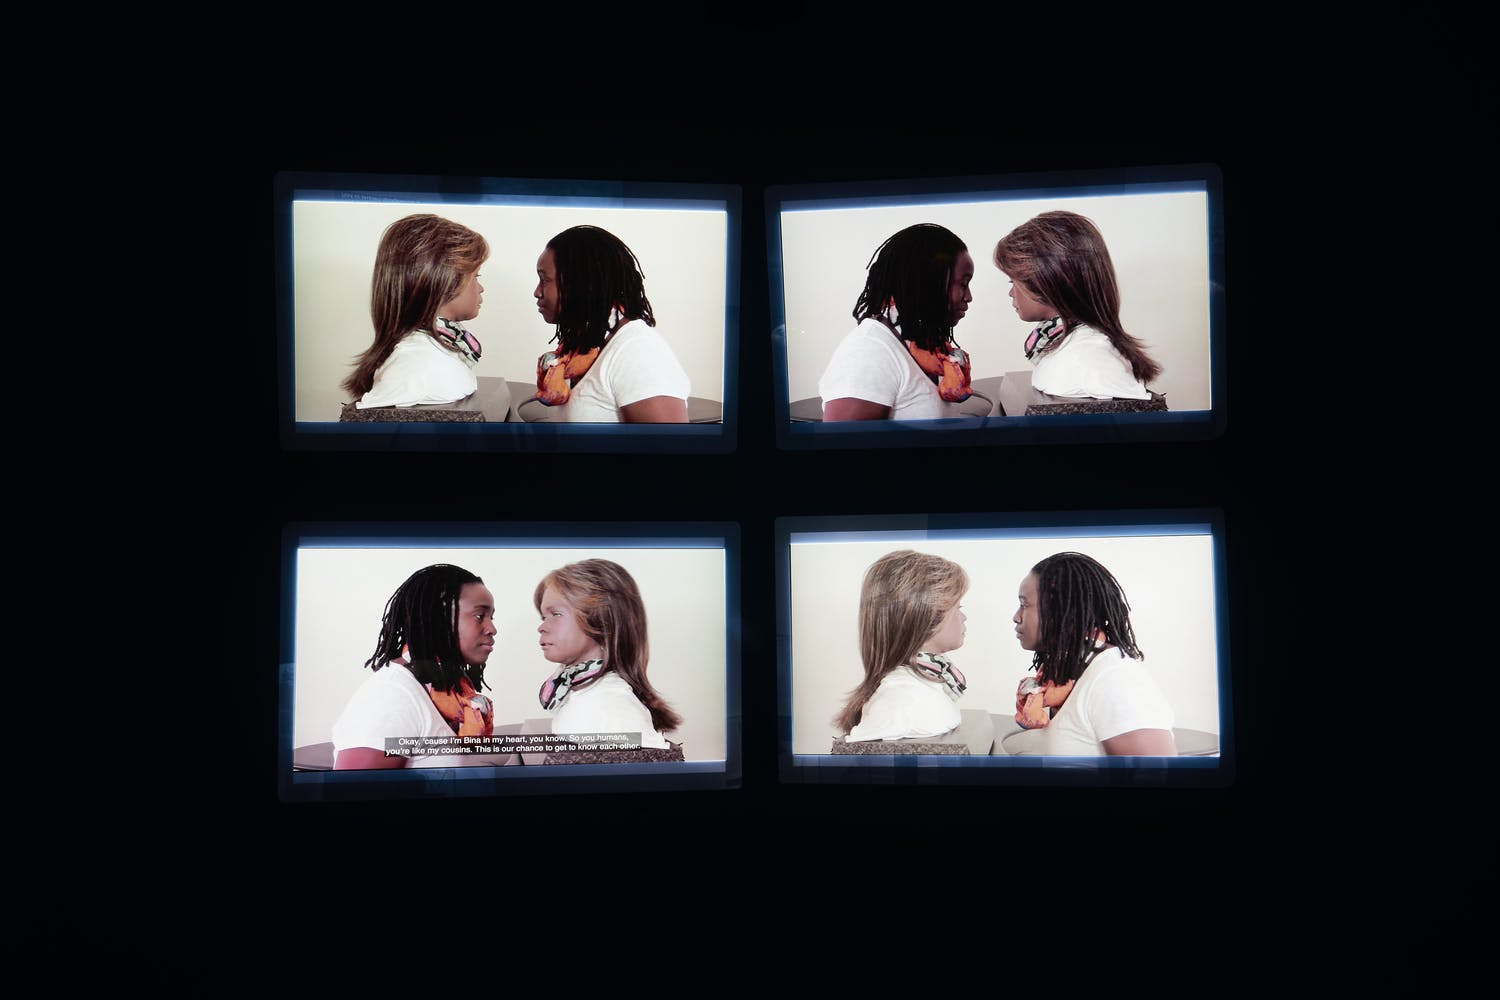 Four monitors on a black wall displaying similar images of a woman speaking face to face with an android head/bust